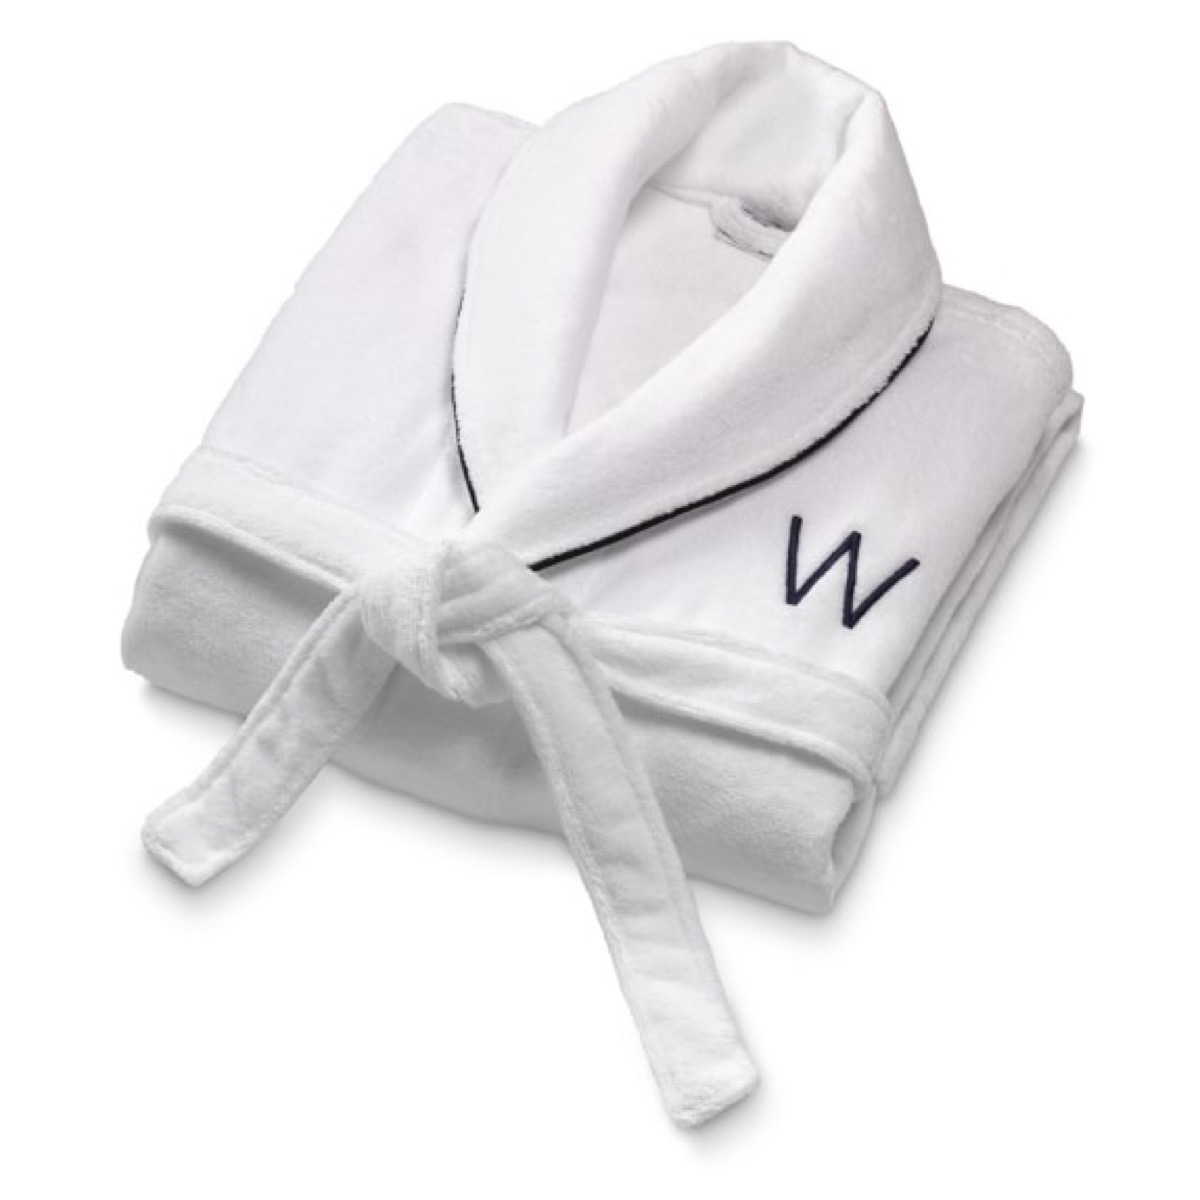 hydrocotton chambers williams sonoma robe, gifts for girlfriend